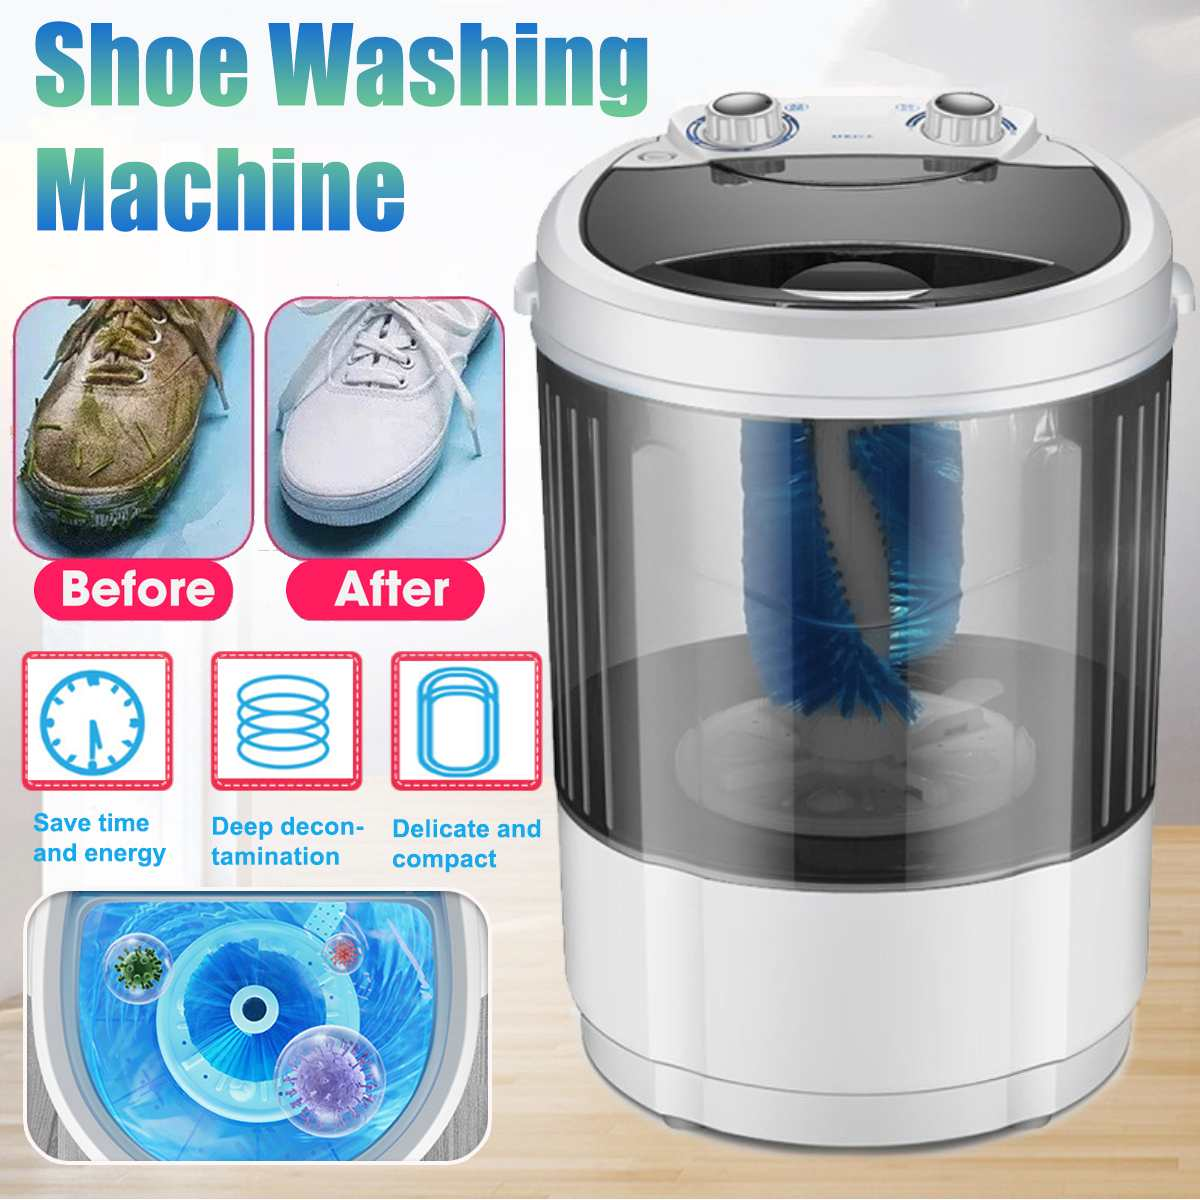 4.5kg Portable Shoes Washing Machine Household Single Tube Washer And Dryer Machine For Shoes UV Bacteriostasis Shoes Cleaner